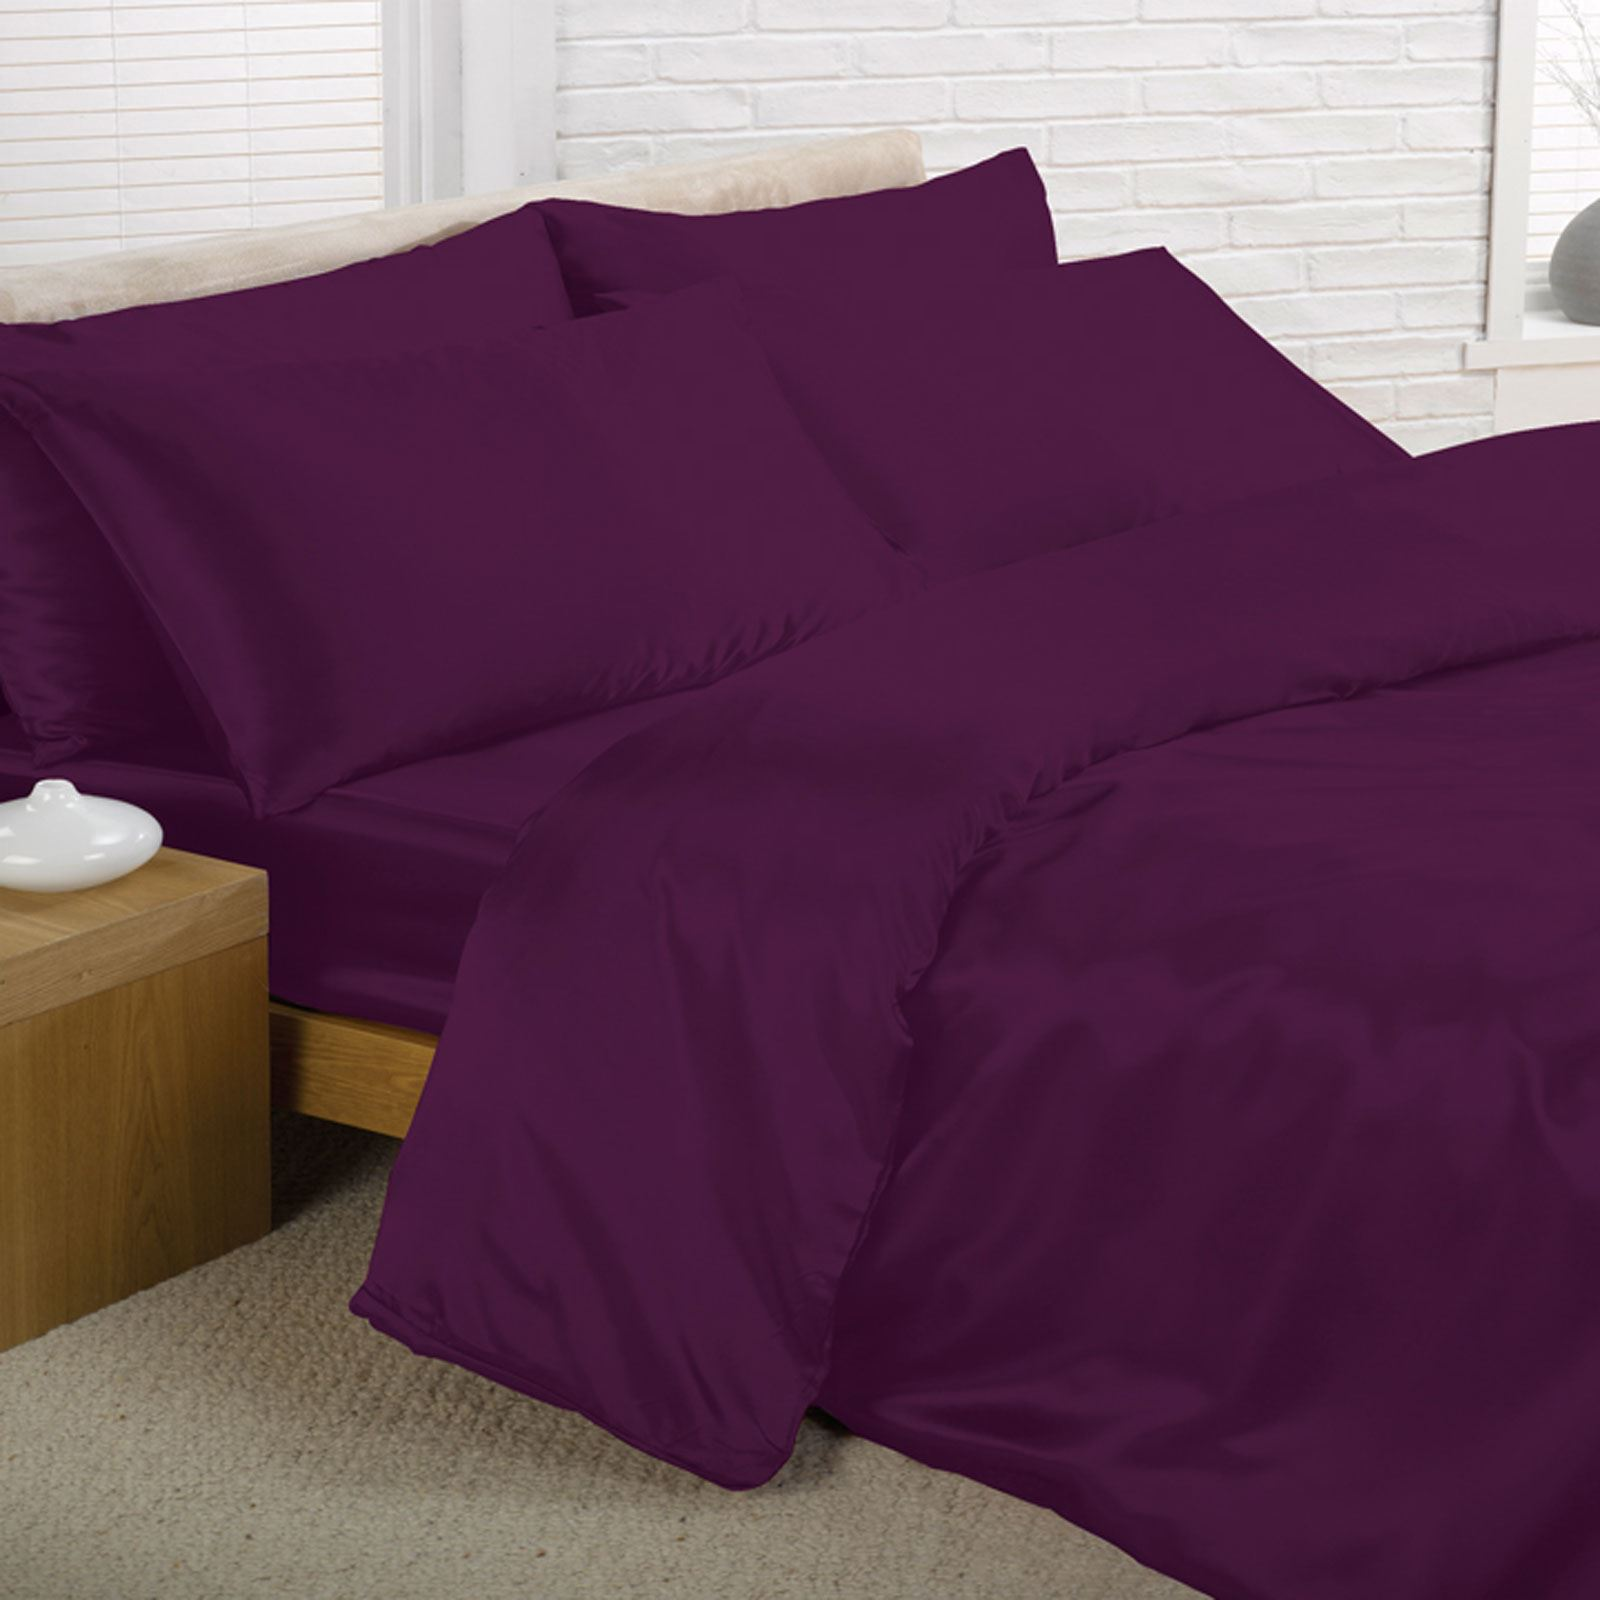 Popular Satin Bedding Sets - 6 Piece Set - Duvet Cover + Fitted Sheet +  JN59